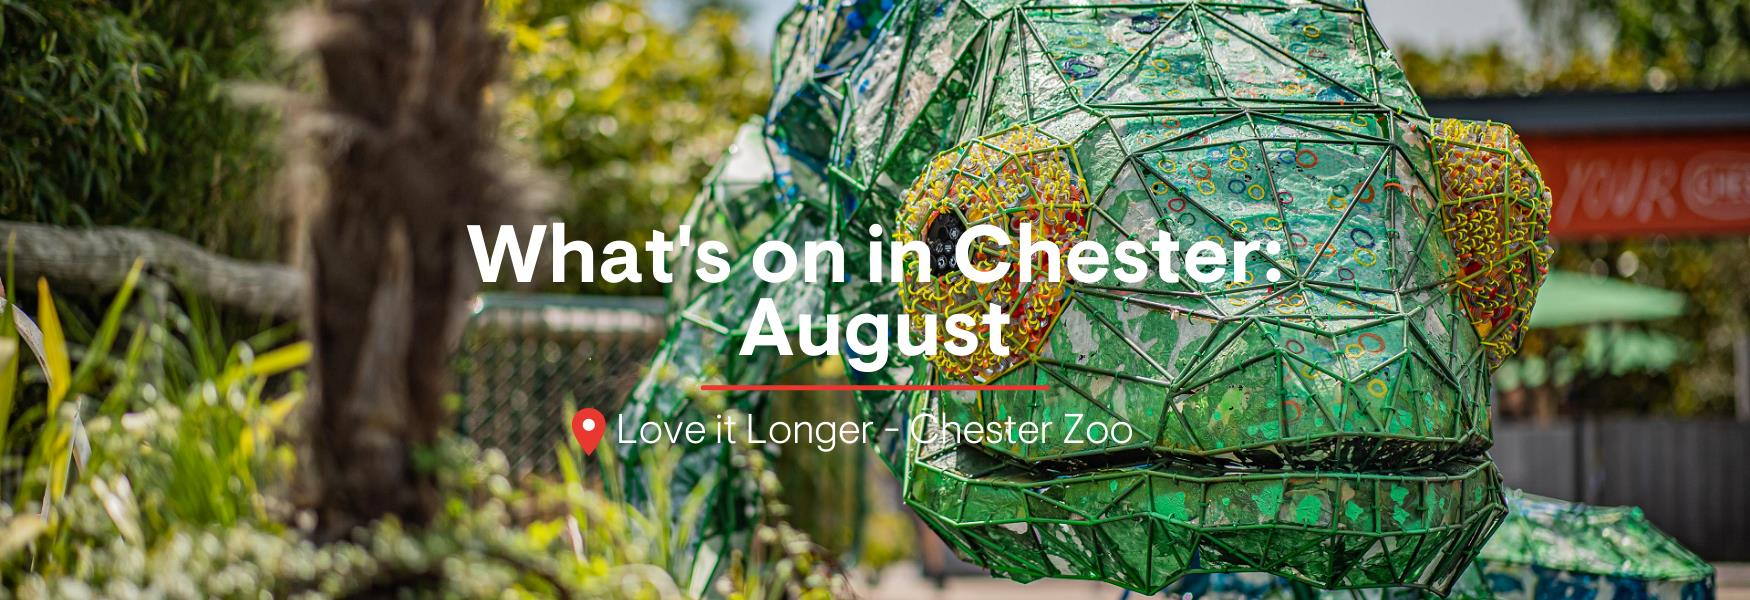 What's on in Chester: August